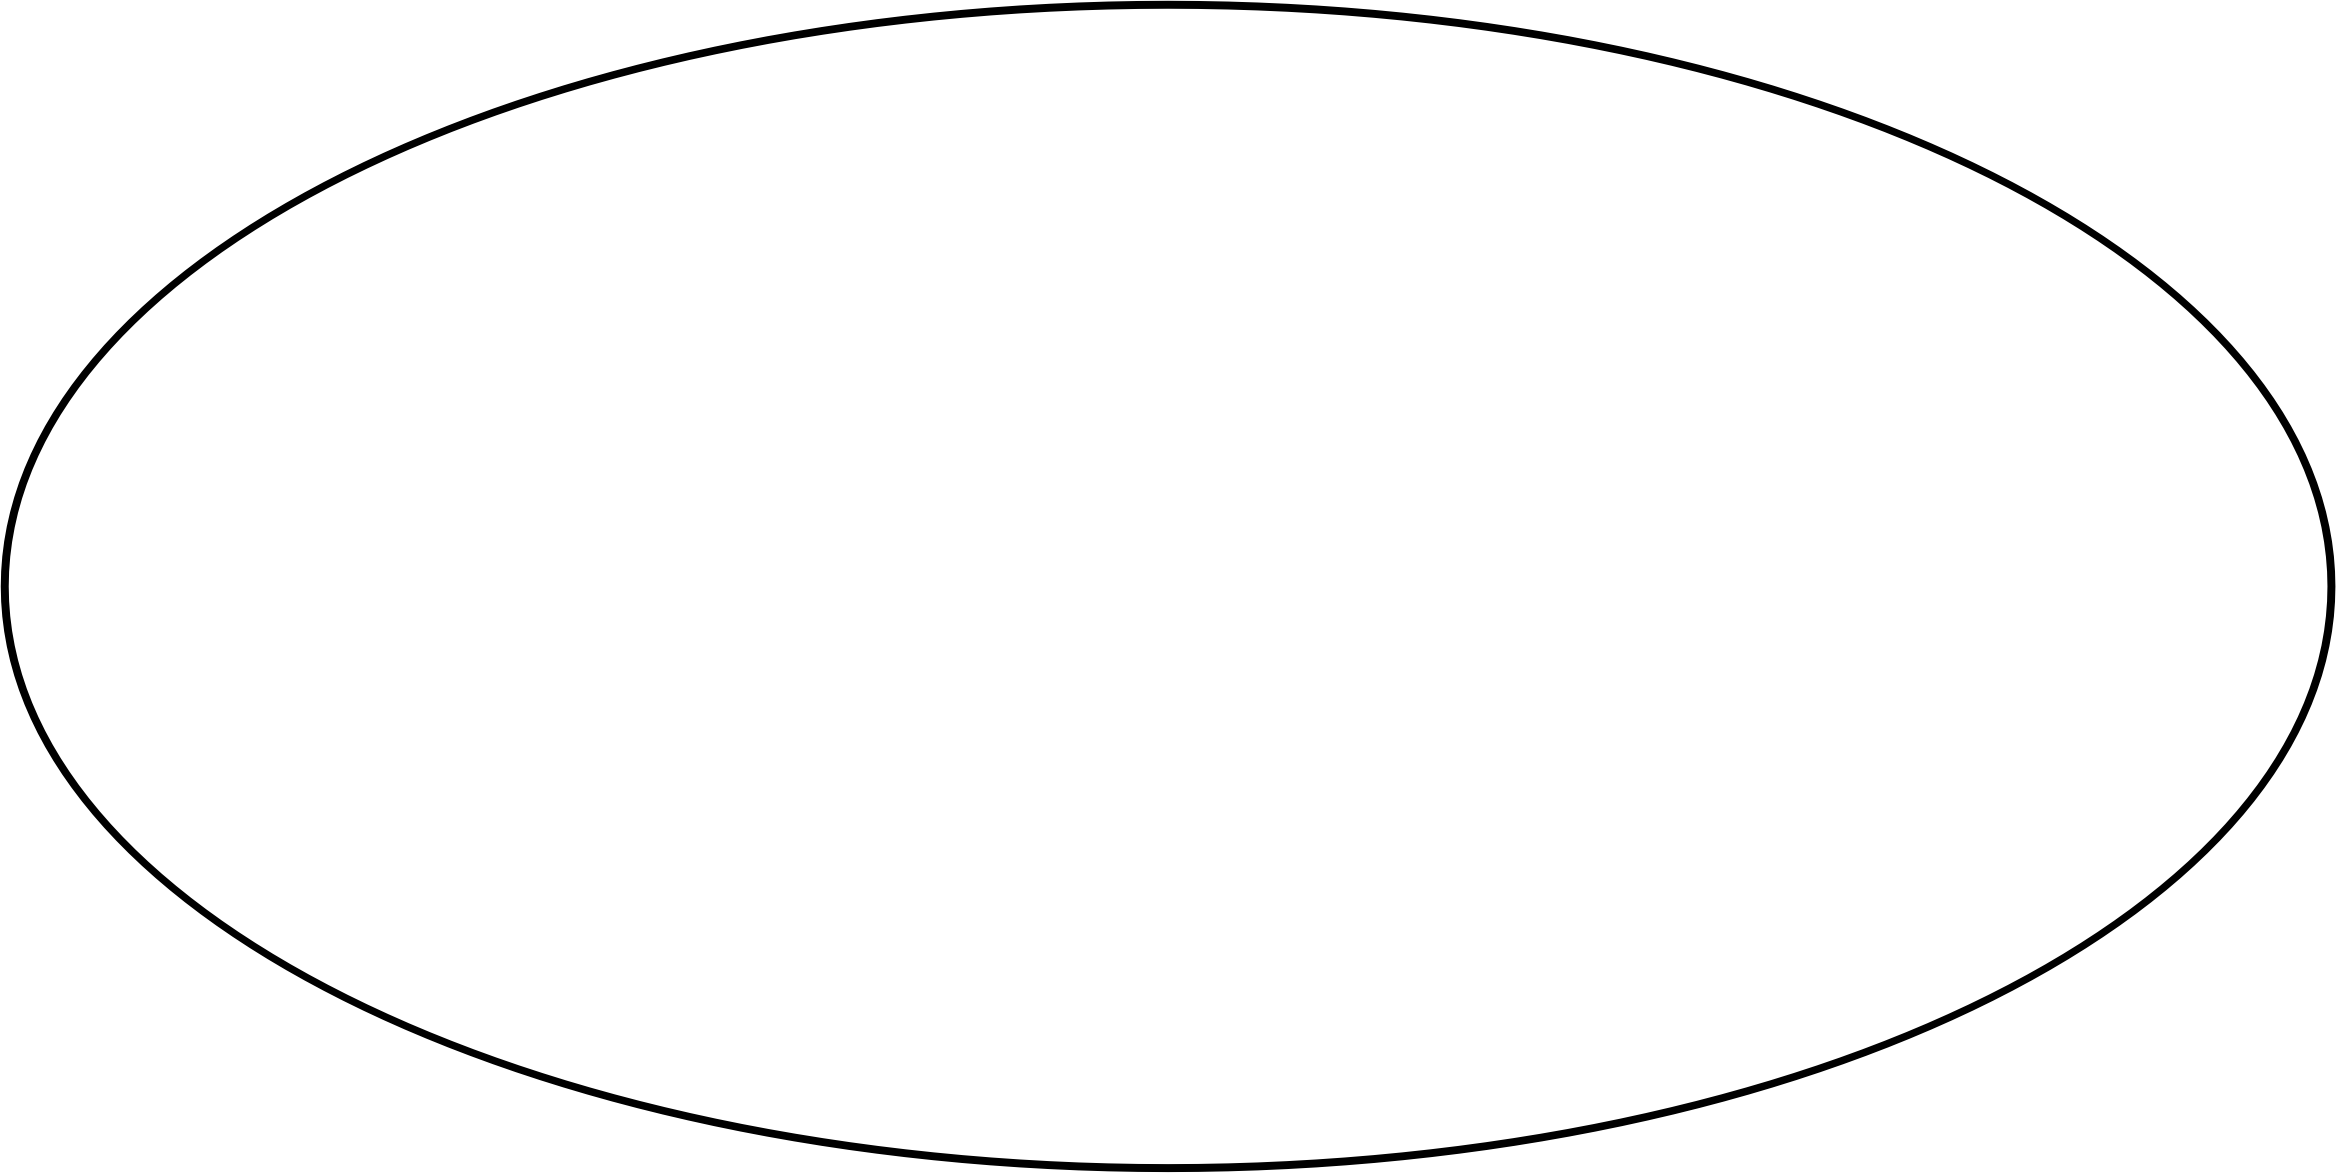 Oval clipart black and white, Oval black and white.